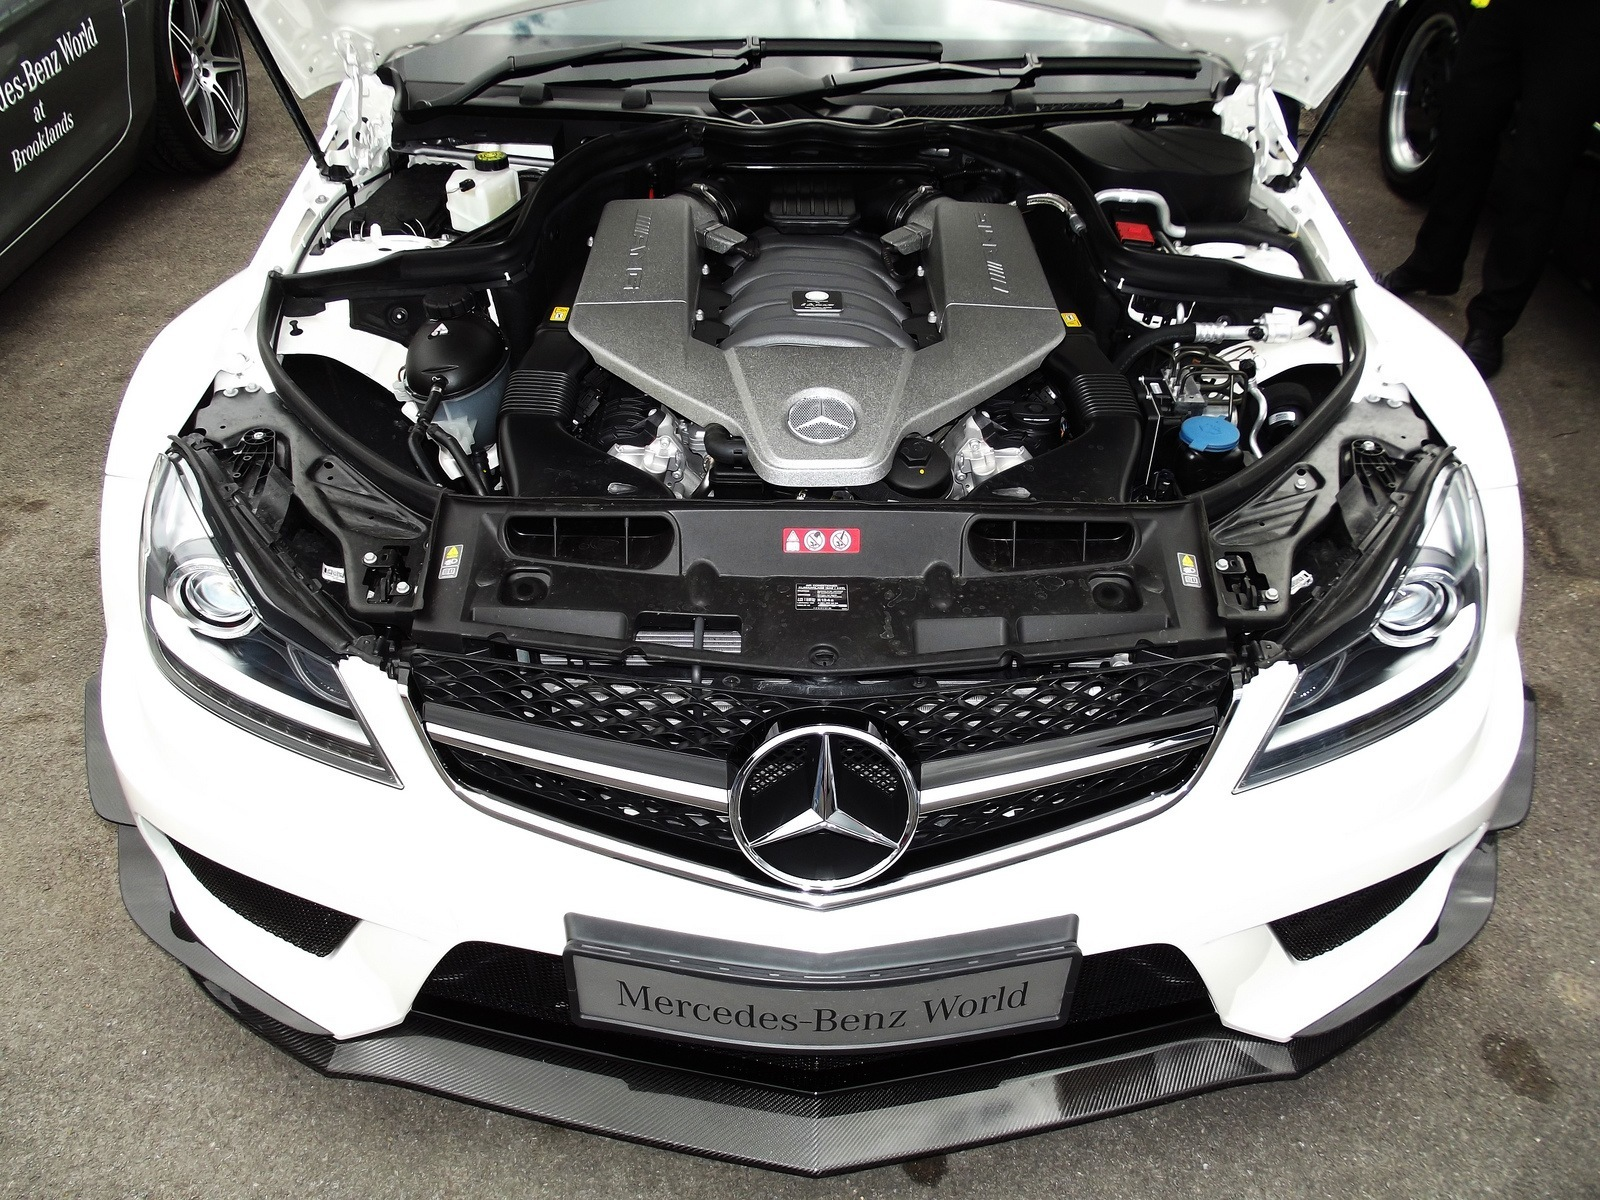 Mercedes Benz C63 Amg W204 Review Amp Buyers Guide Exotic Car Hacks